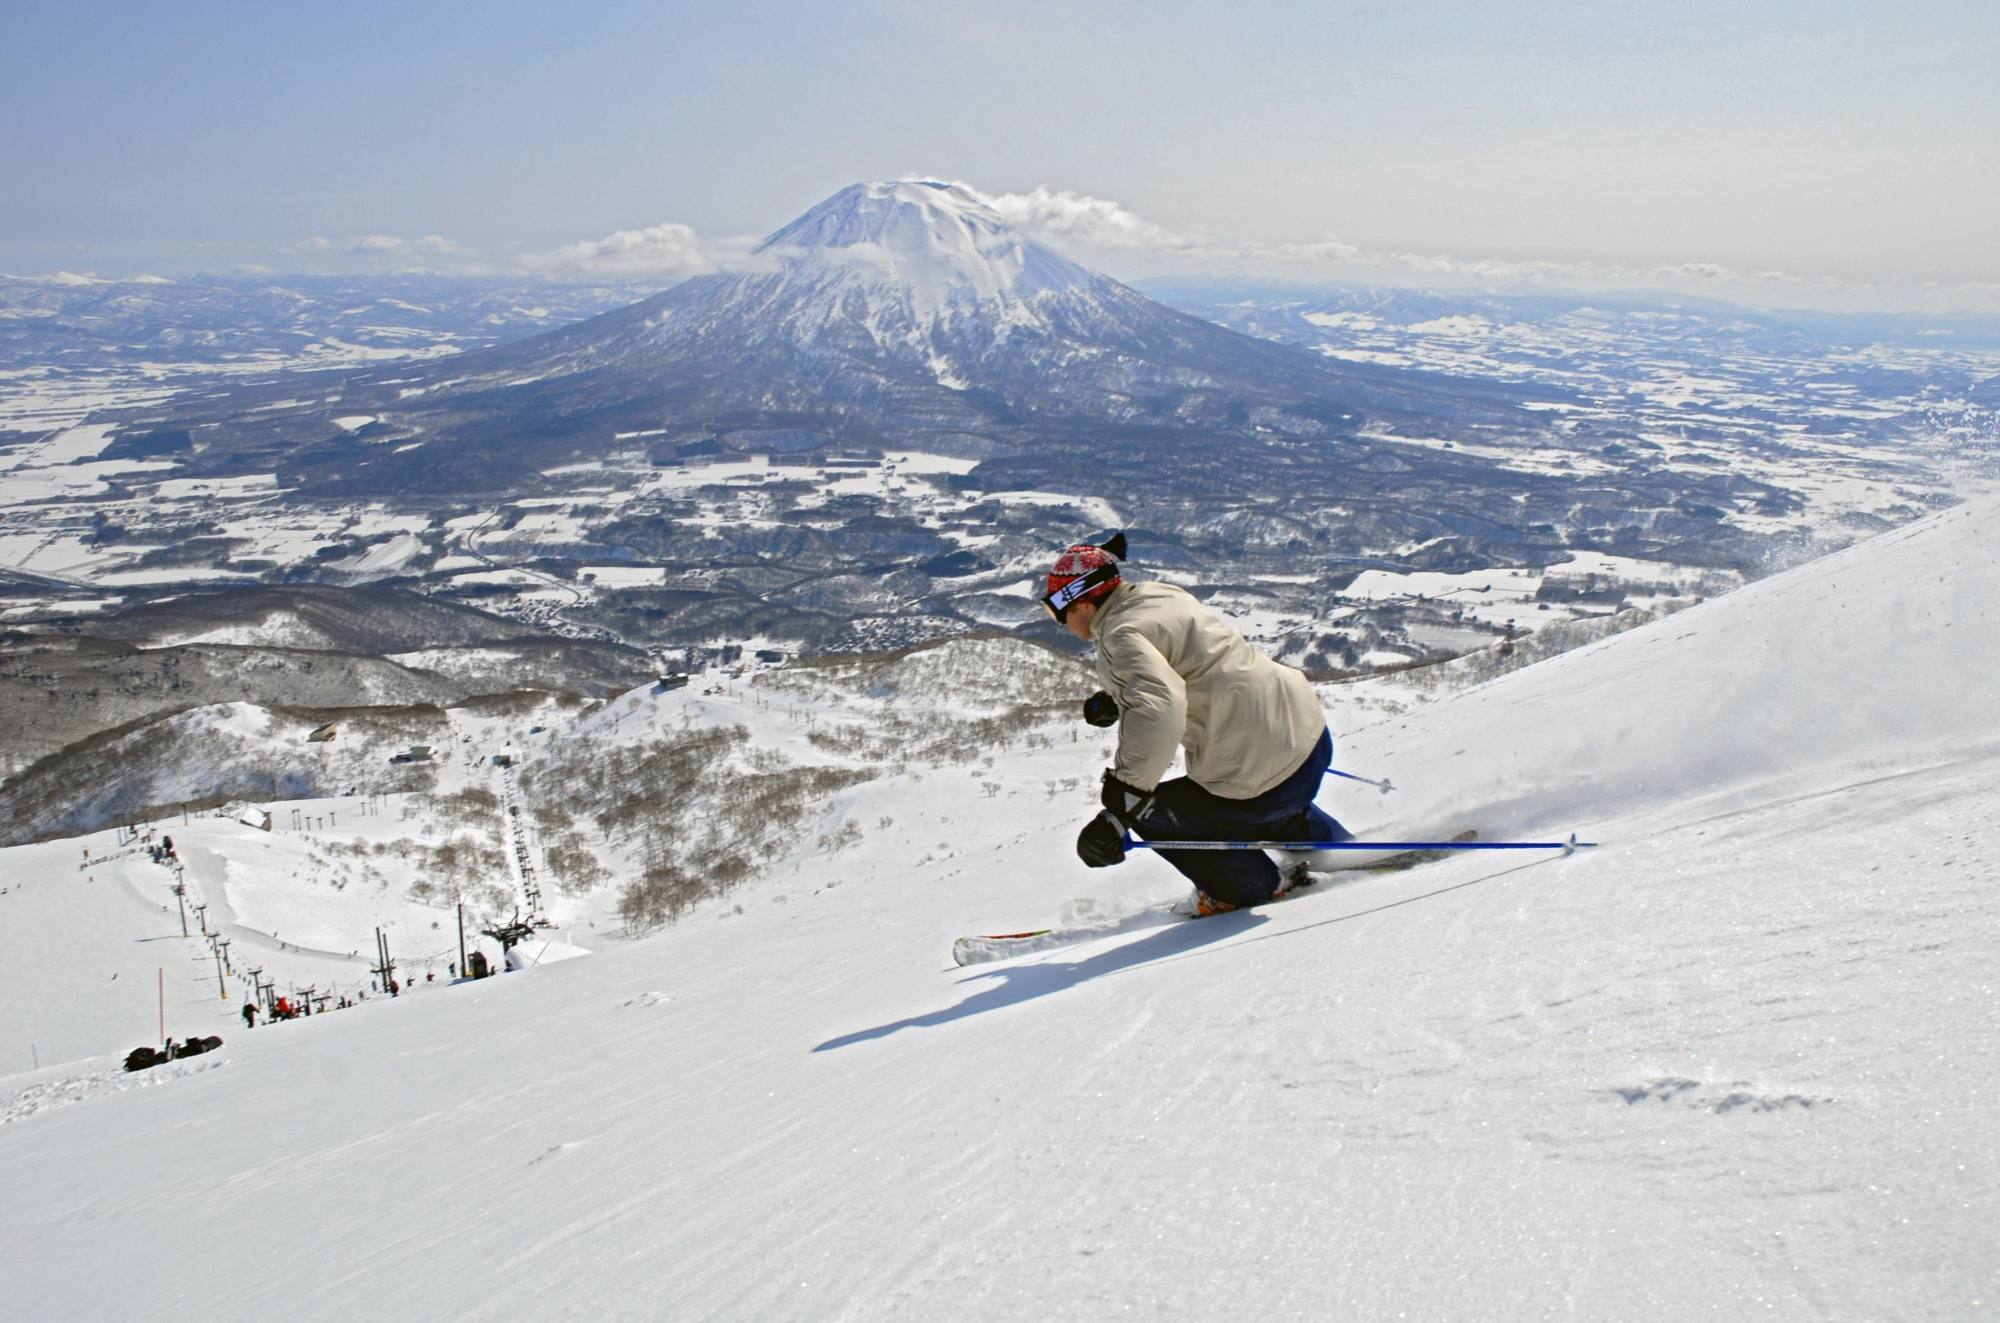 Grand Hirafu is Niseko's largest ski resort area, known for its high-quality powder snow and a wide variety of ski trails and parks.